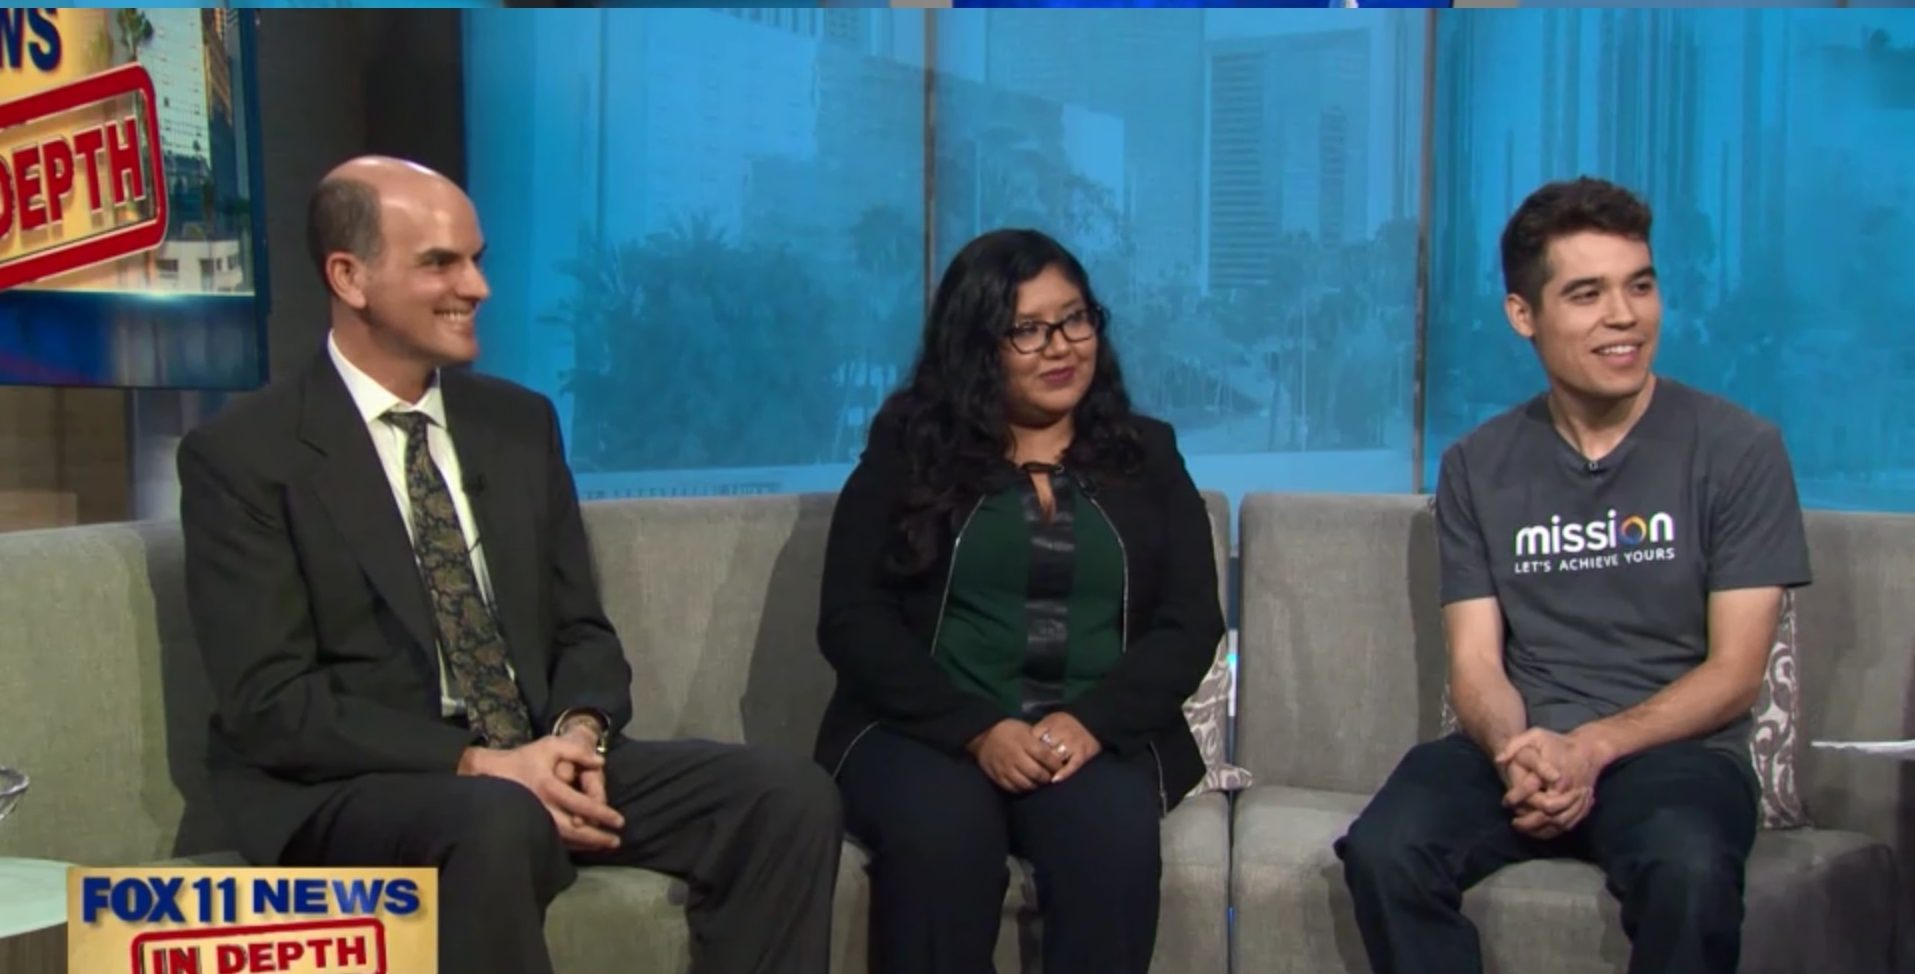 LA-Area community college Cloud Computing Certificate profiled on KTTV-11